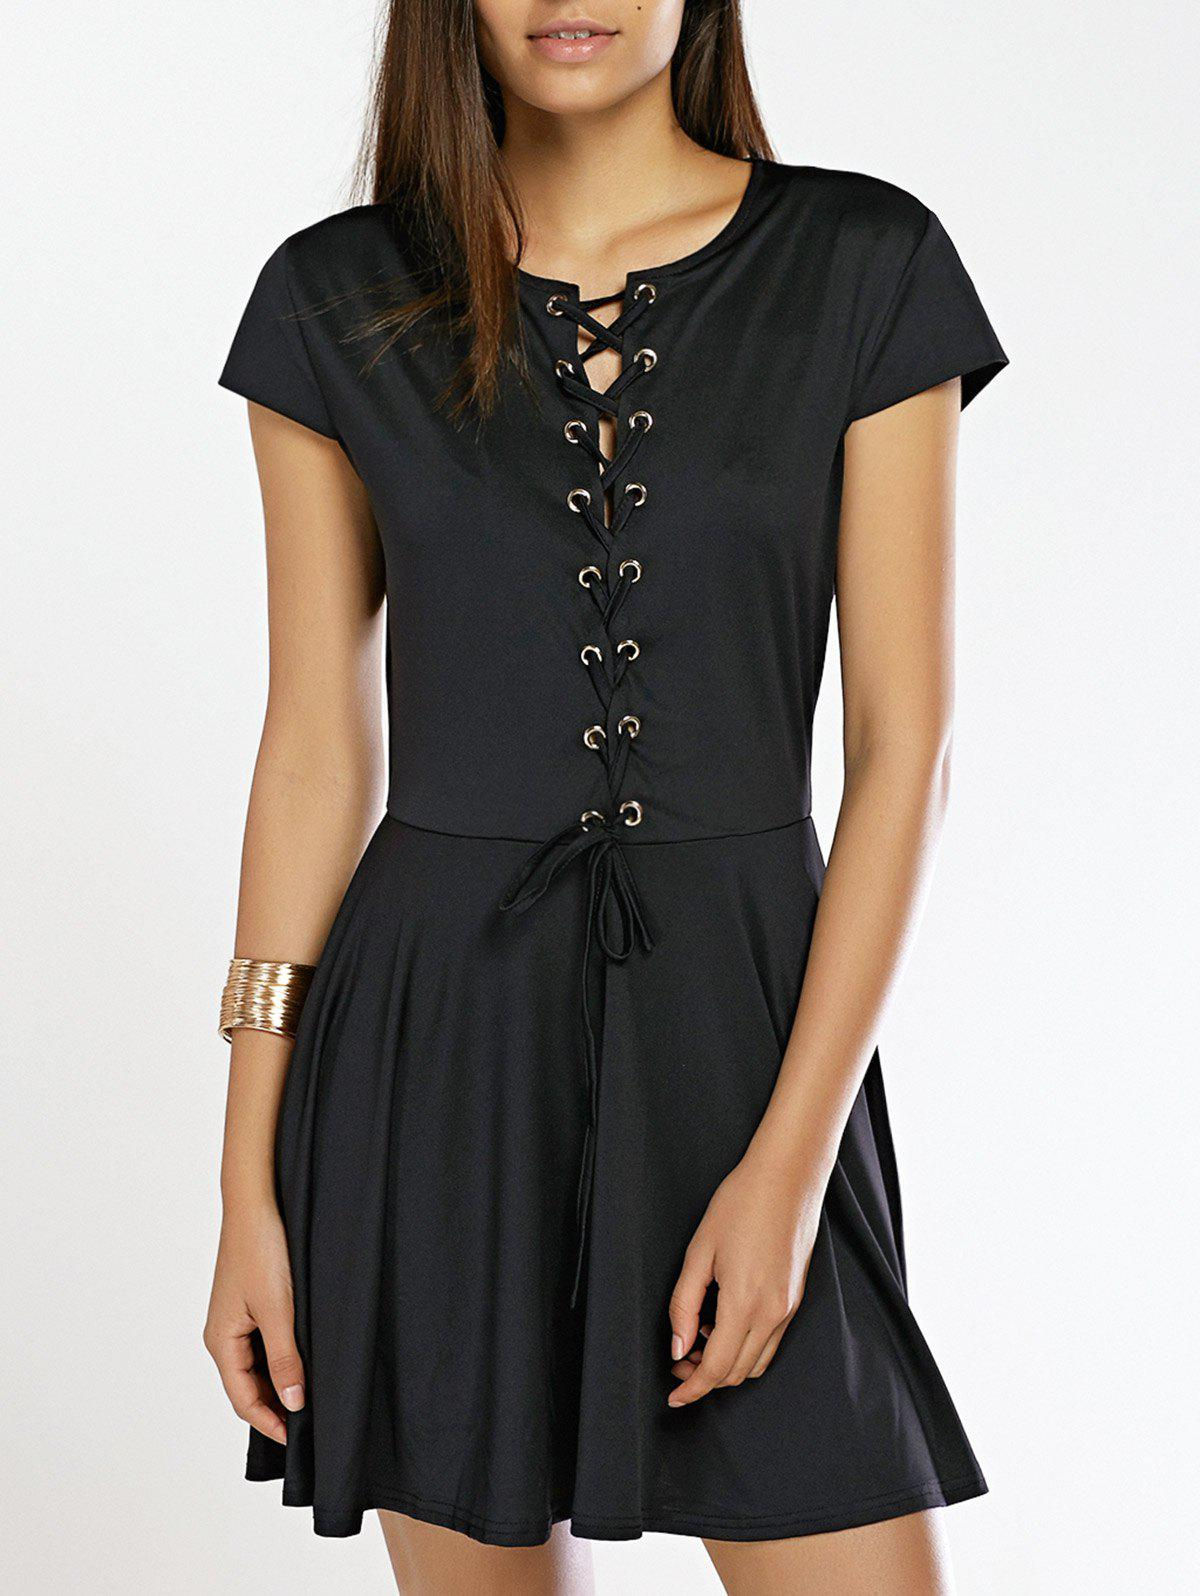 Lace-Up Hollow Out Fit and Flare Dress - BLACK L